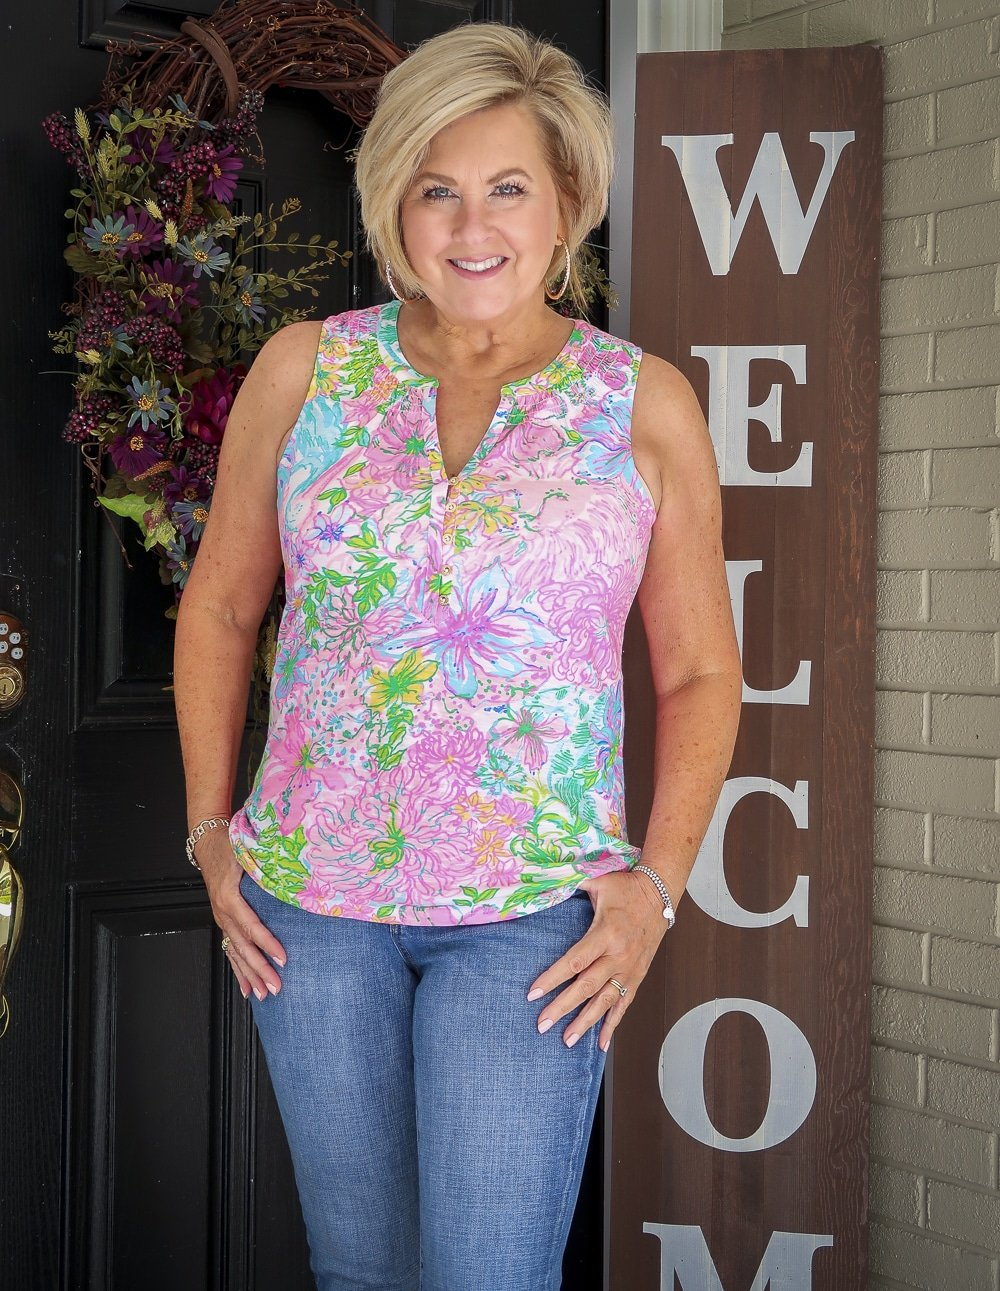 Fashion Blogger 50 Is Not Old is wearing a Lilly Pulitzer top